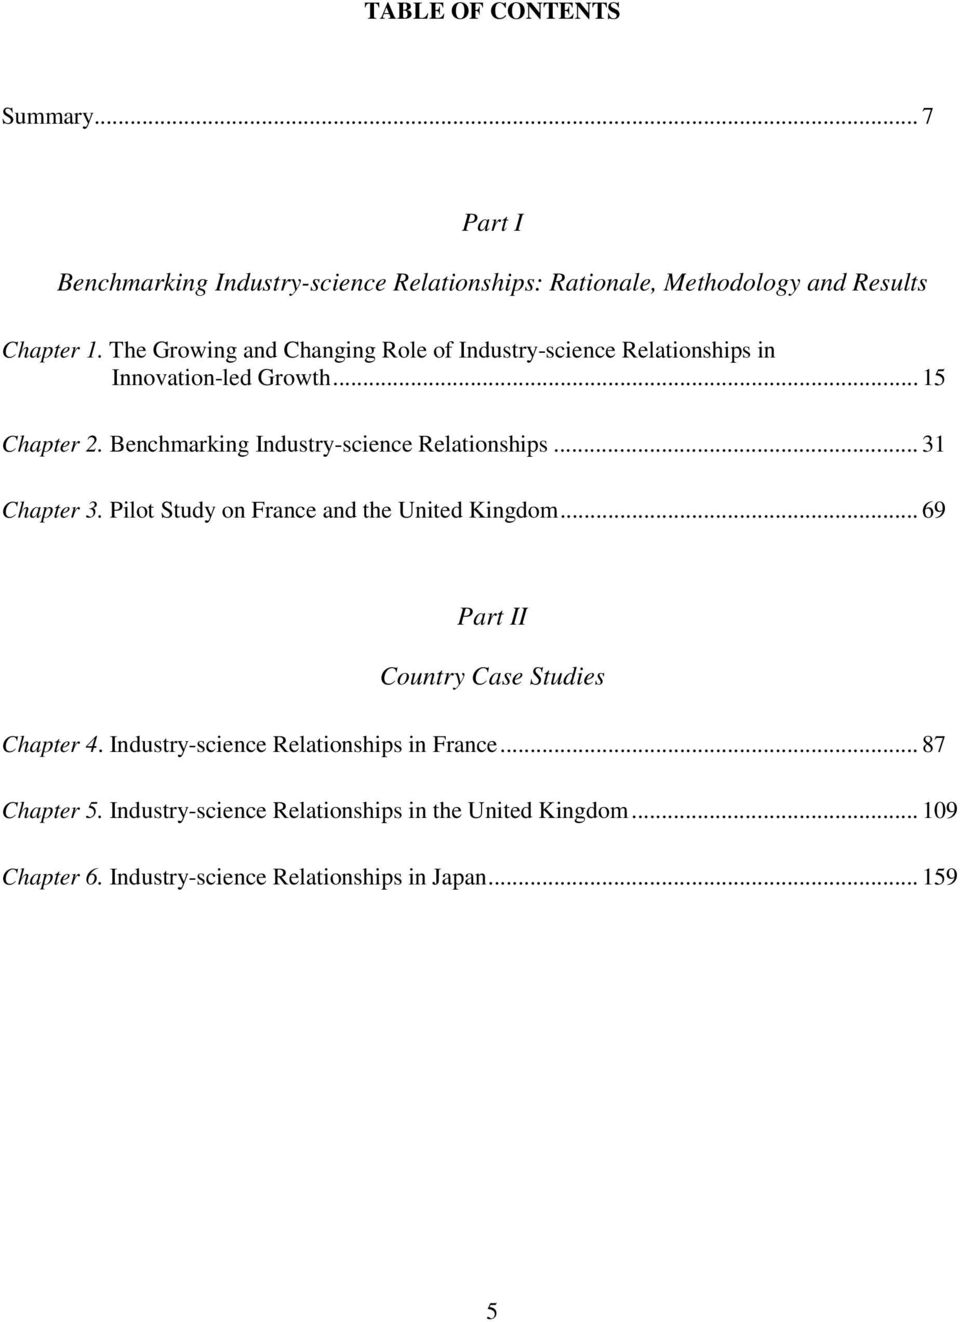 Benchmarking Industry-science Relationships... 31 Chapter 3. Pilot Study on France and the United Kingdom.